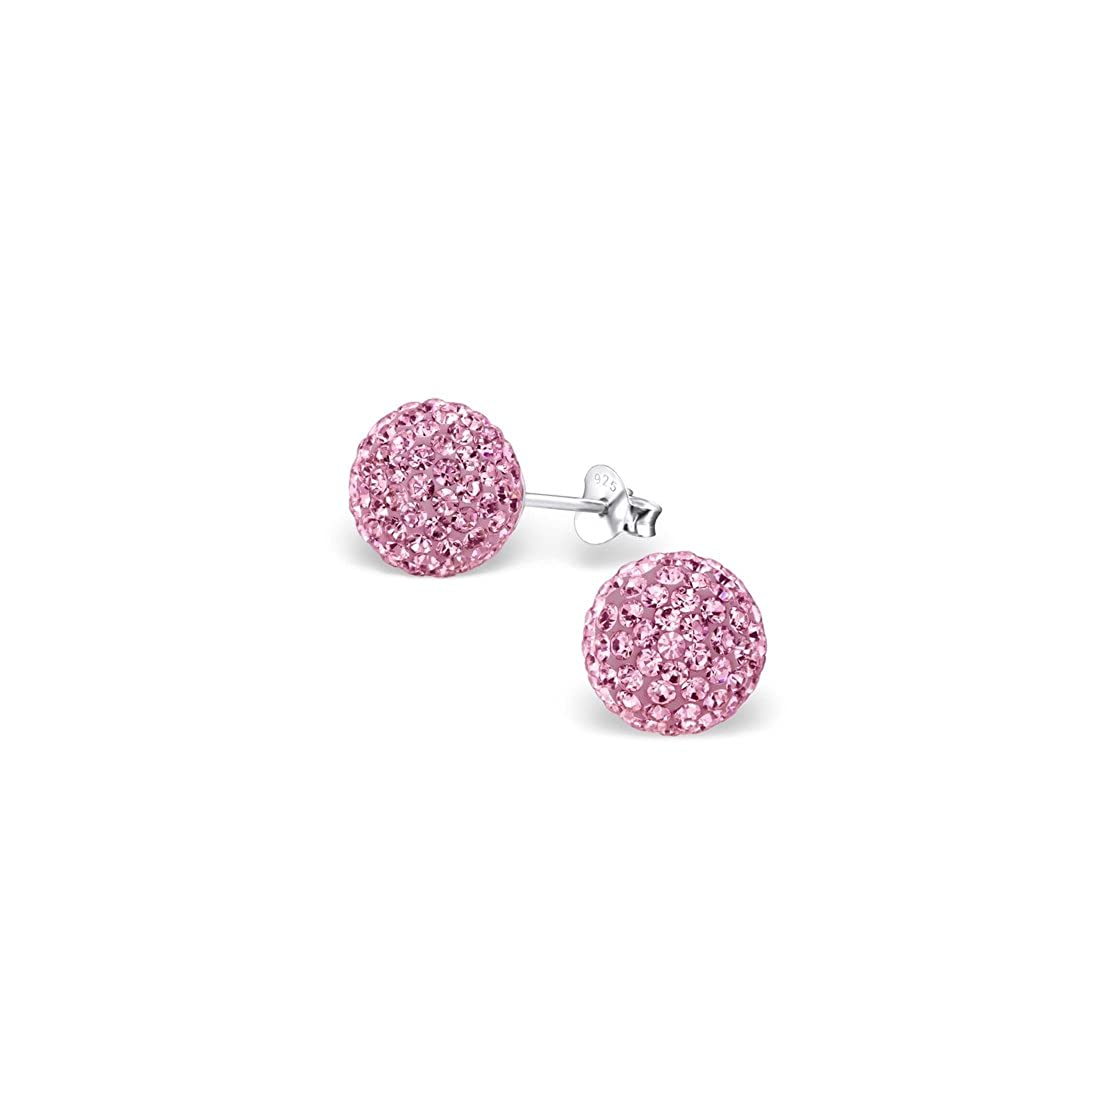 Ball Ear Studs With Crystal And Description Sterling Silver 925 Liara Polished And Nickel Free